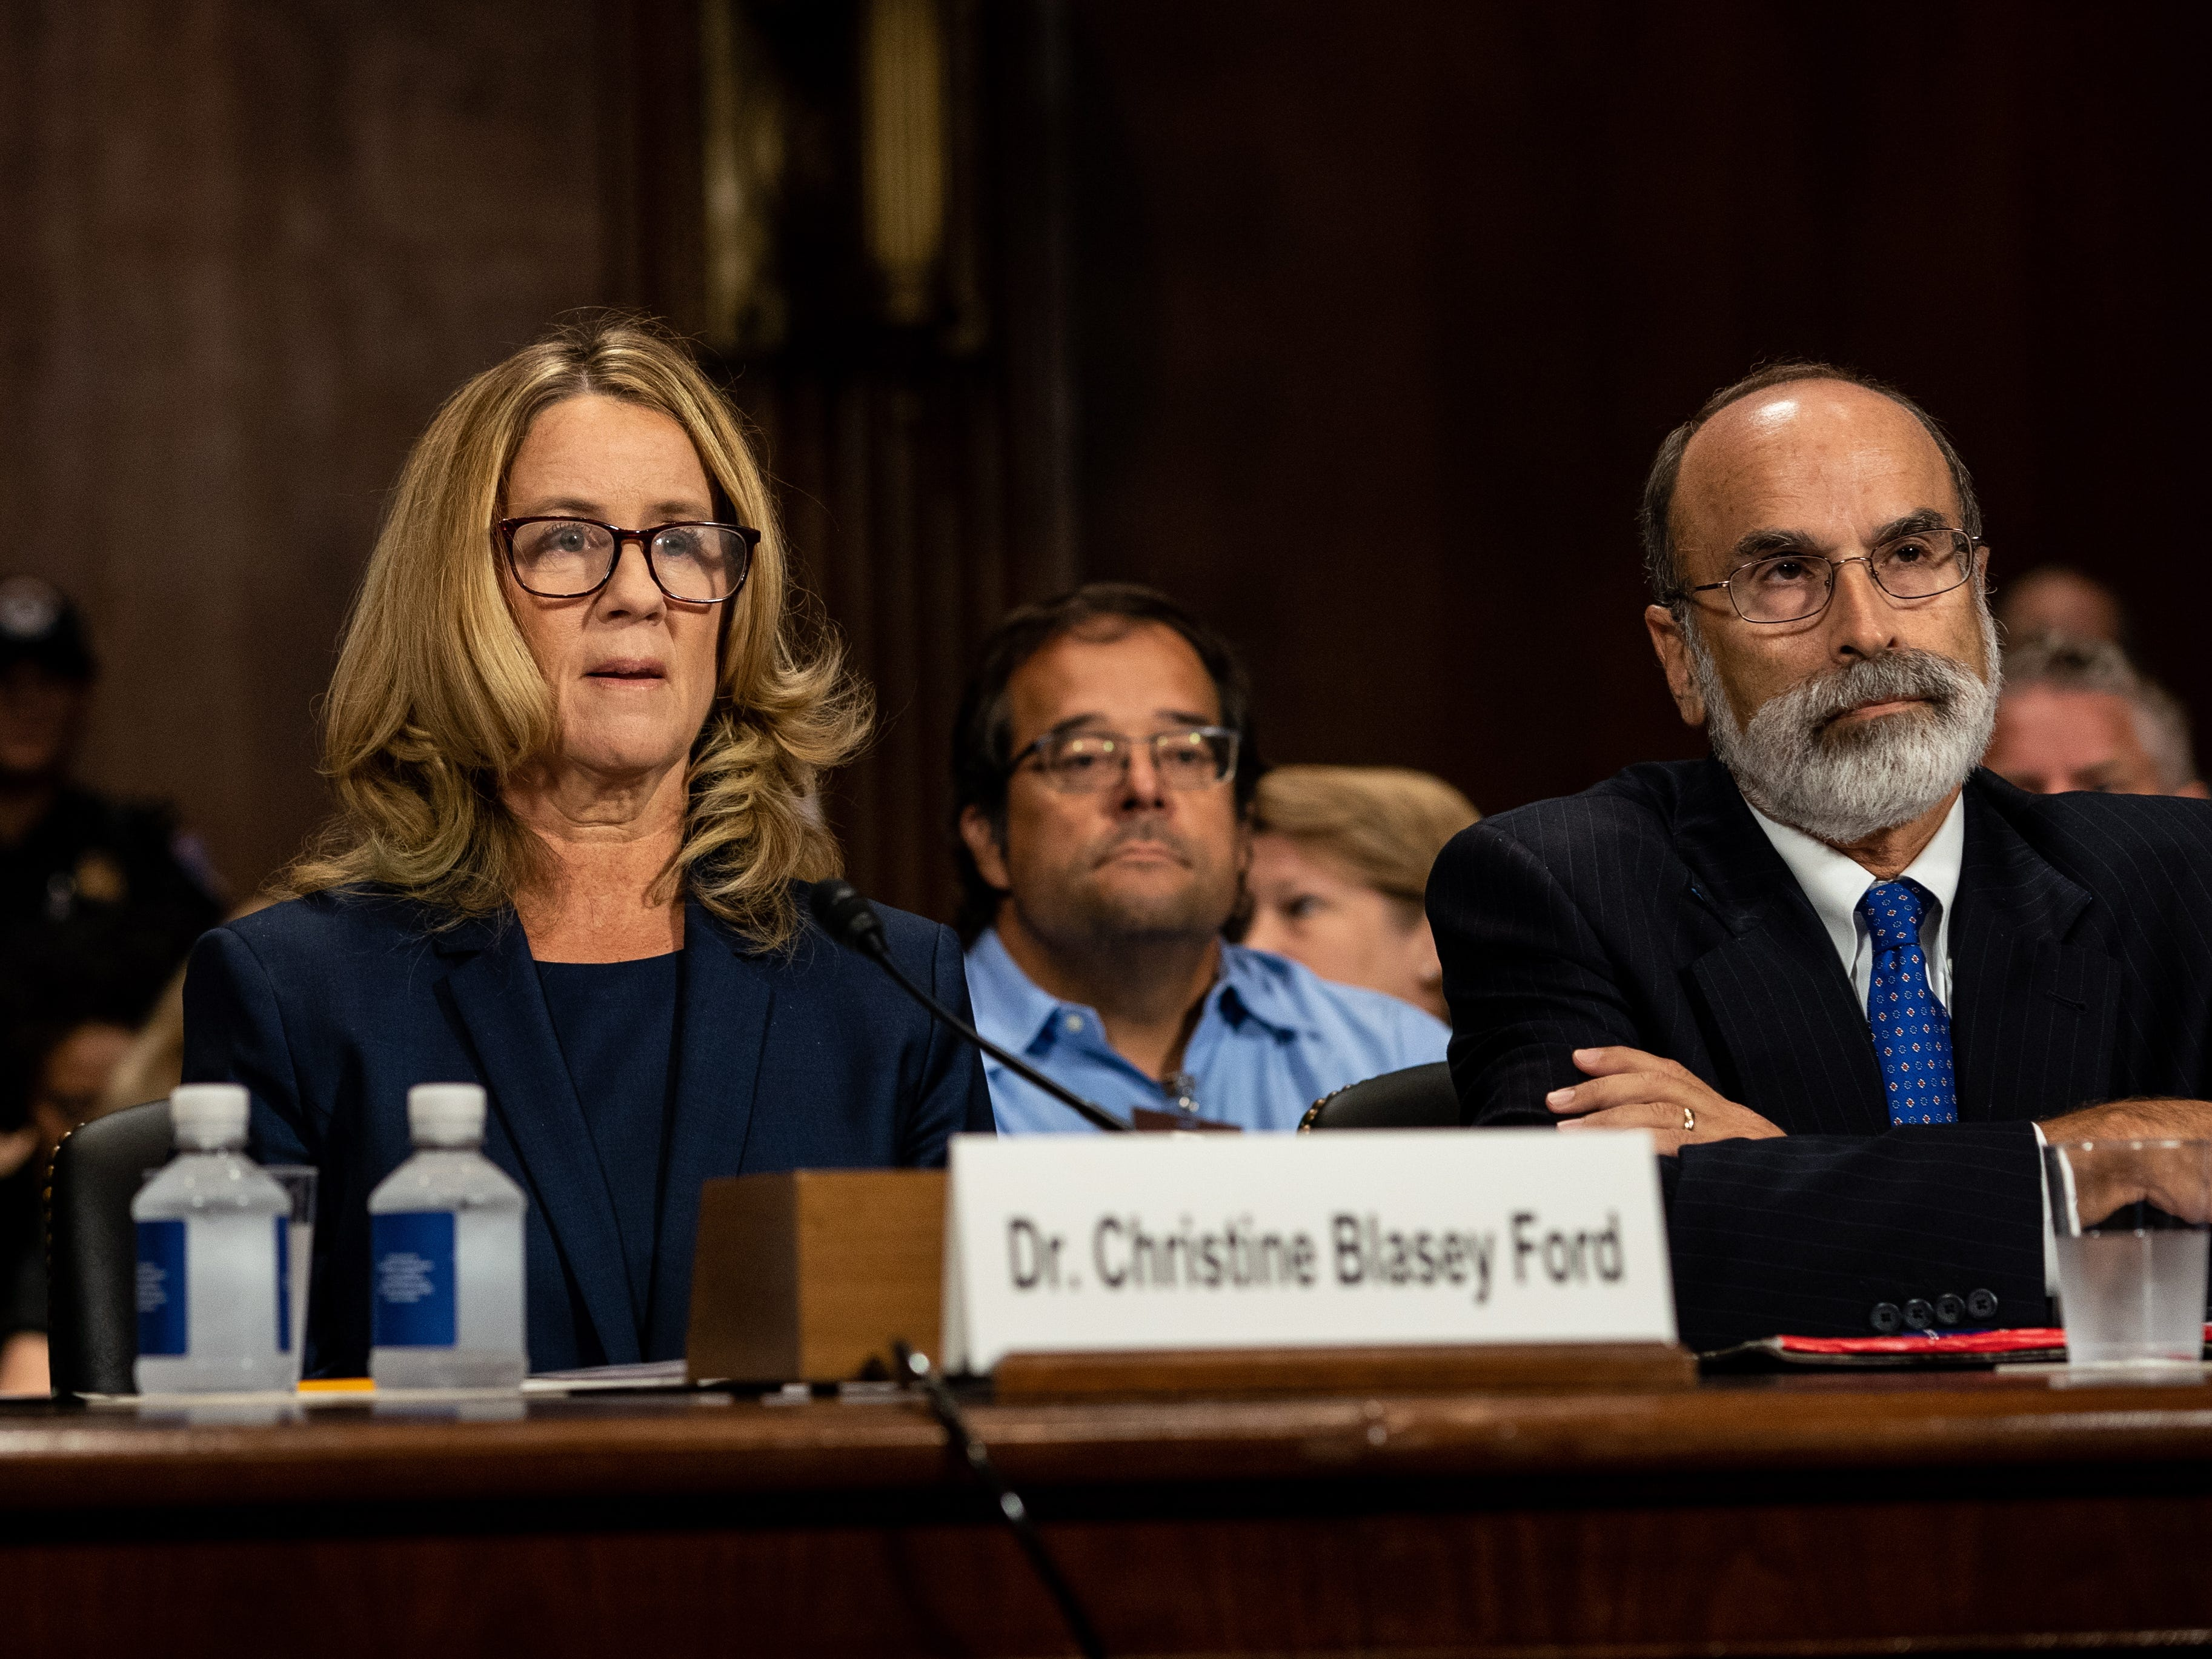 epa07051151 Dr. Christine Blasey Ford (C) with her lawyers Debra S. Katz (L) and Michael R. Bromwich (R) speaks  before the Senate Judiciary Committee hearing on the nomination of Brett Kavanaugh to be an associate justice of the Supreme Court of the United States, on Capitol Hill in Washington, DC, USA, 27 September 2018. US President Donald J. Trump's nominee to be a US Supreme Court associate justice Brett Kavanaugh is in a tumultuous confirmation process as multiple women have accused Kavanaugh of sexual misconduct.  EPA-EFE/ERIN SCHAFF / POOL ORG XMIT: NYT100